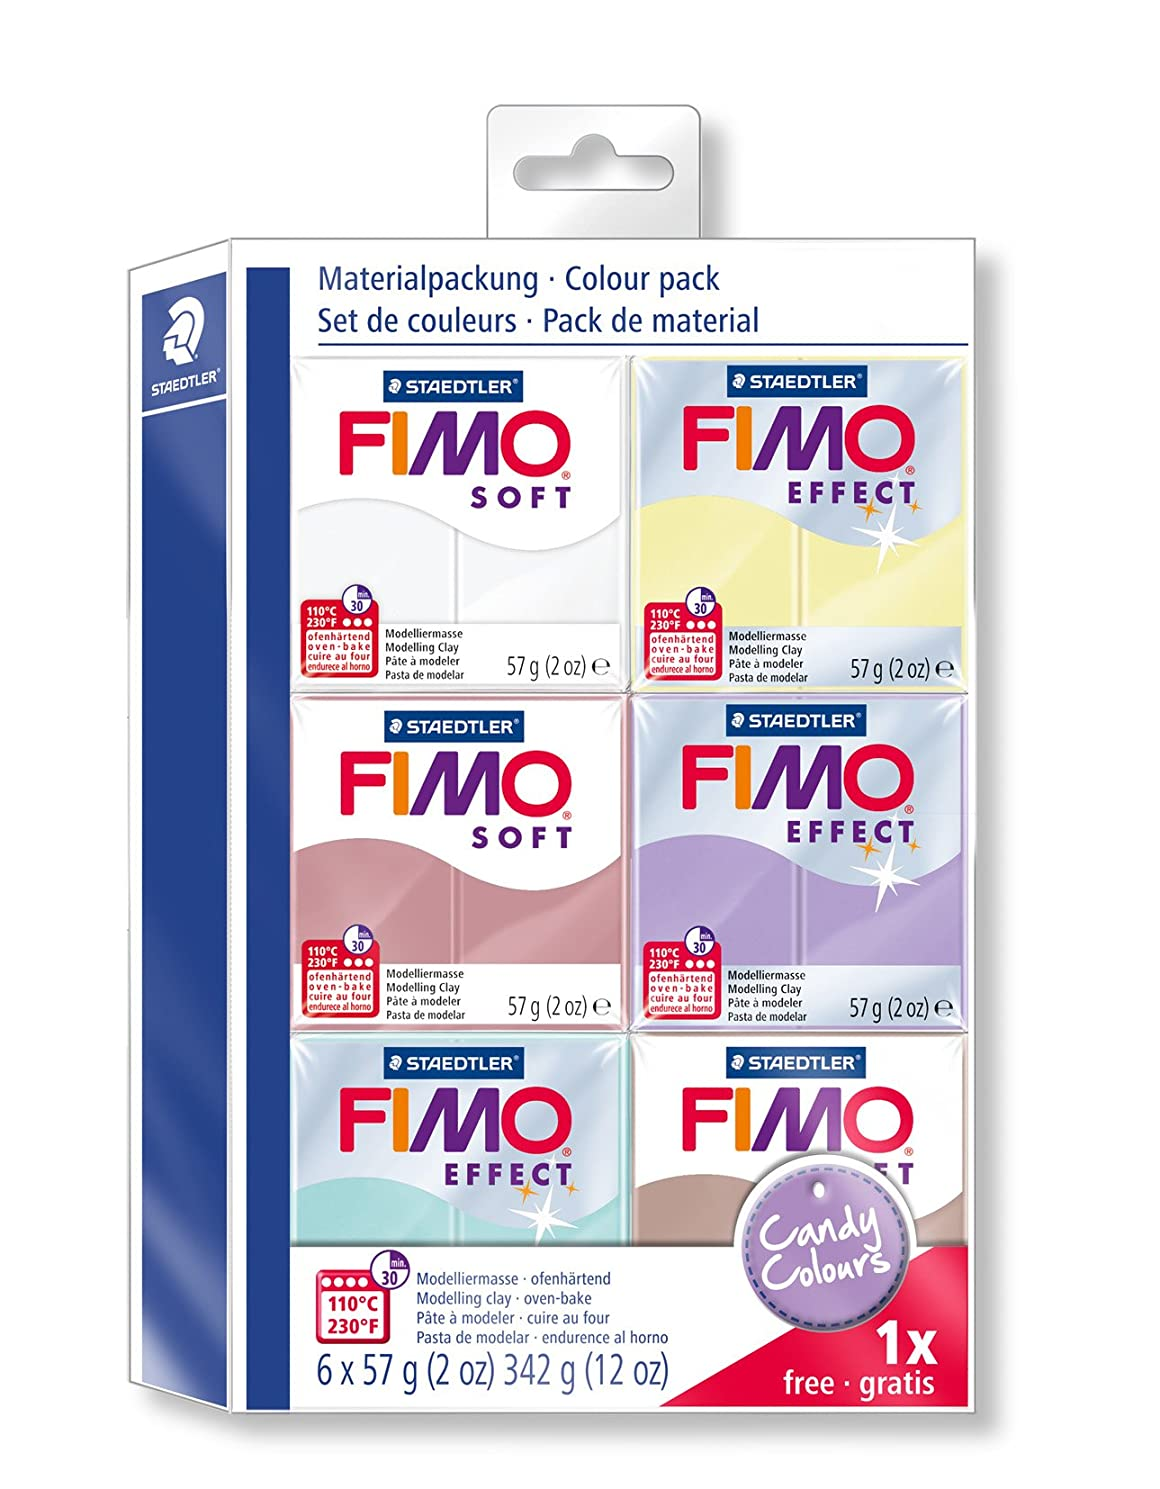 Staedtler Fimo Soft 8023?25?Modelling Clay, Pack of 6?Standard Colours Candy